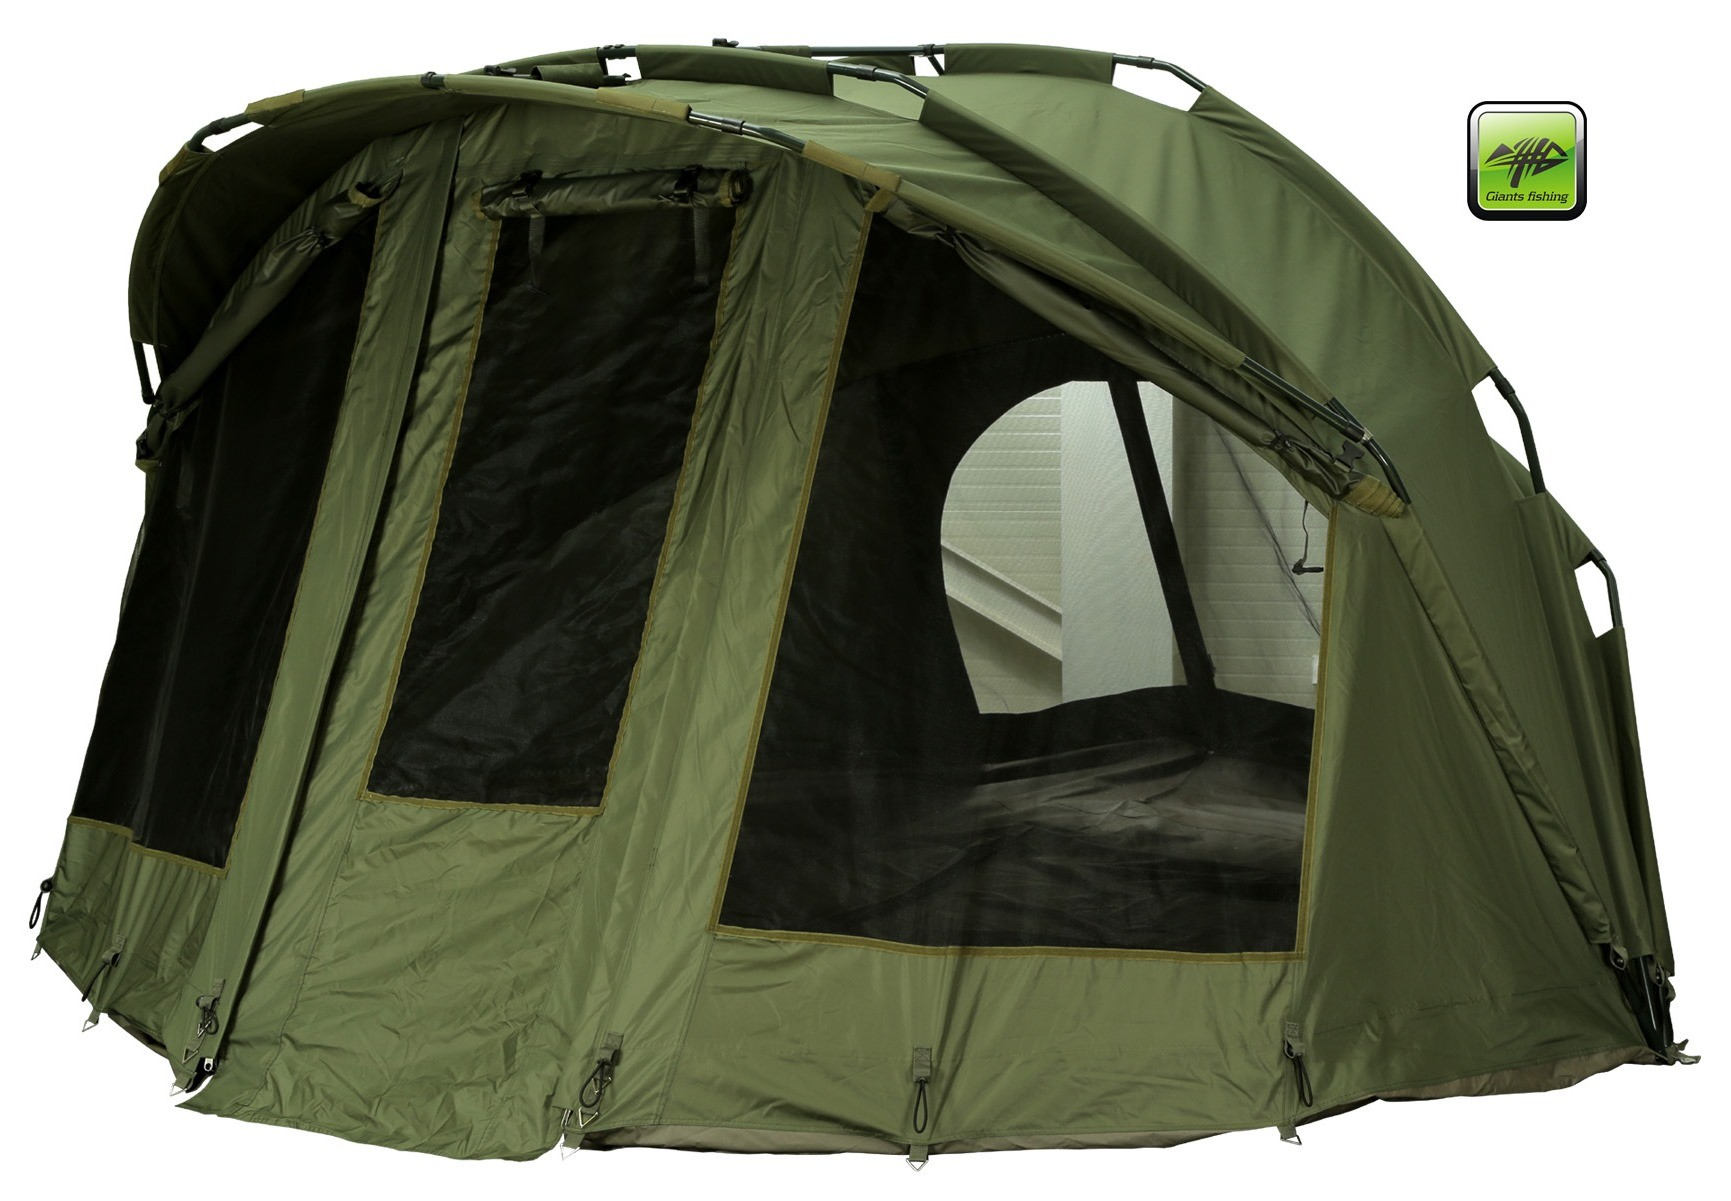 GIANTS FISHING - Bivak Luxury Bivvy 2-3 Man